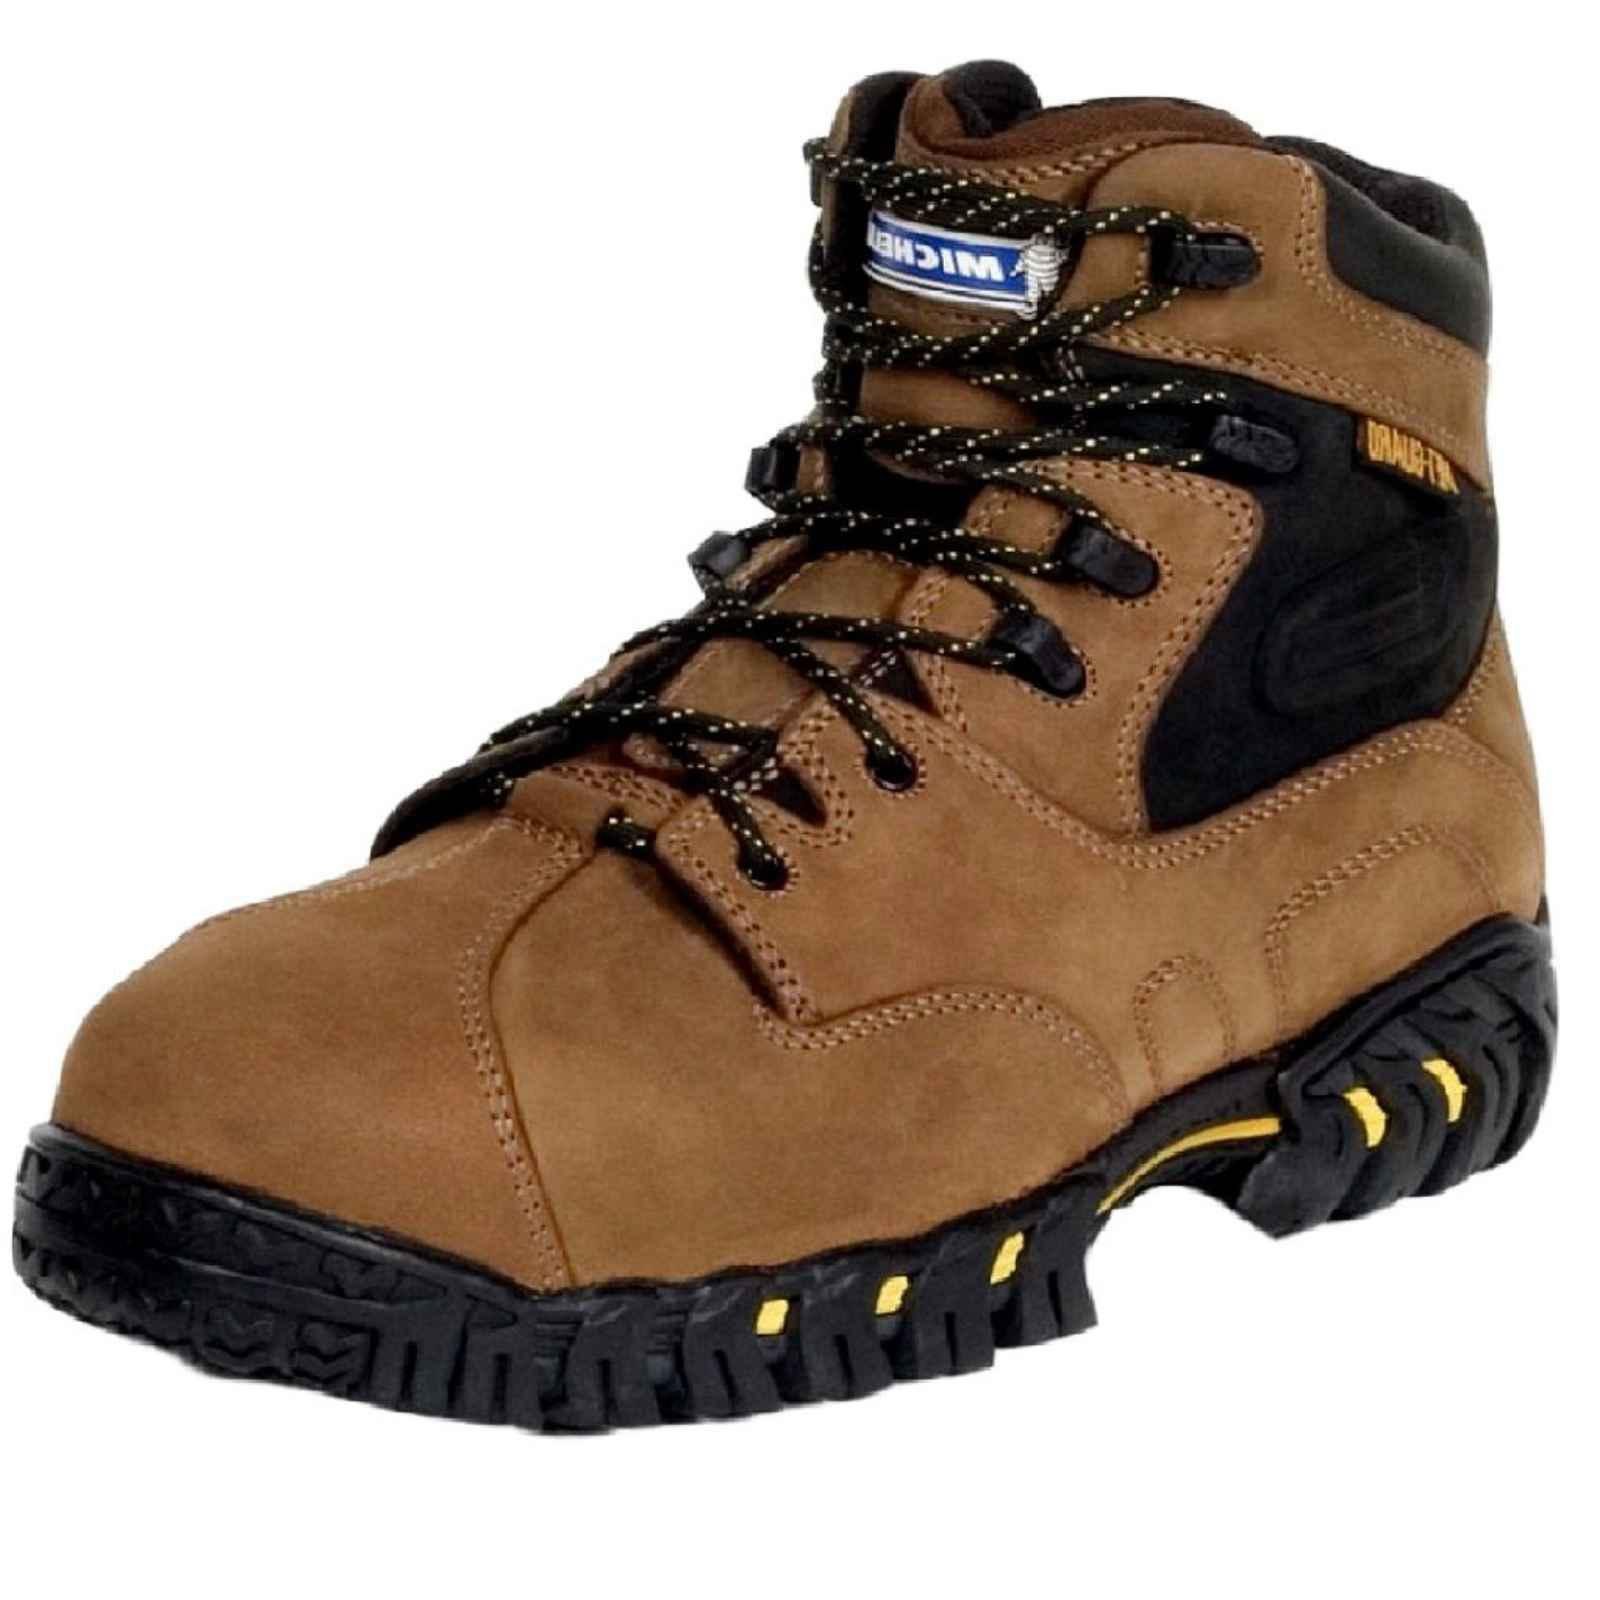 Michelin Men's Steel Toe Metatarsal Guard Hitop Boots,Brown,8 W